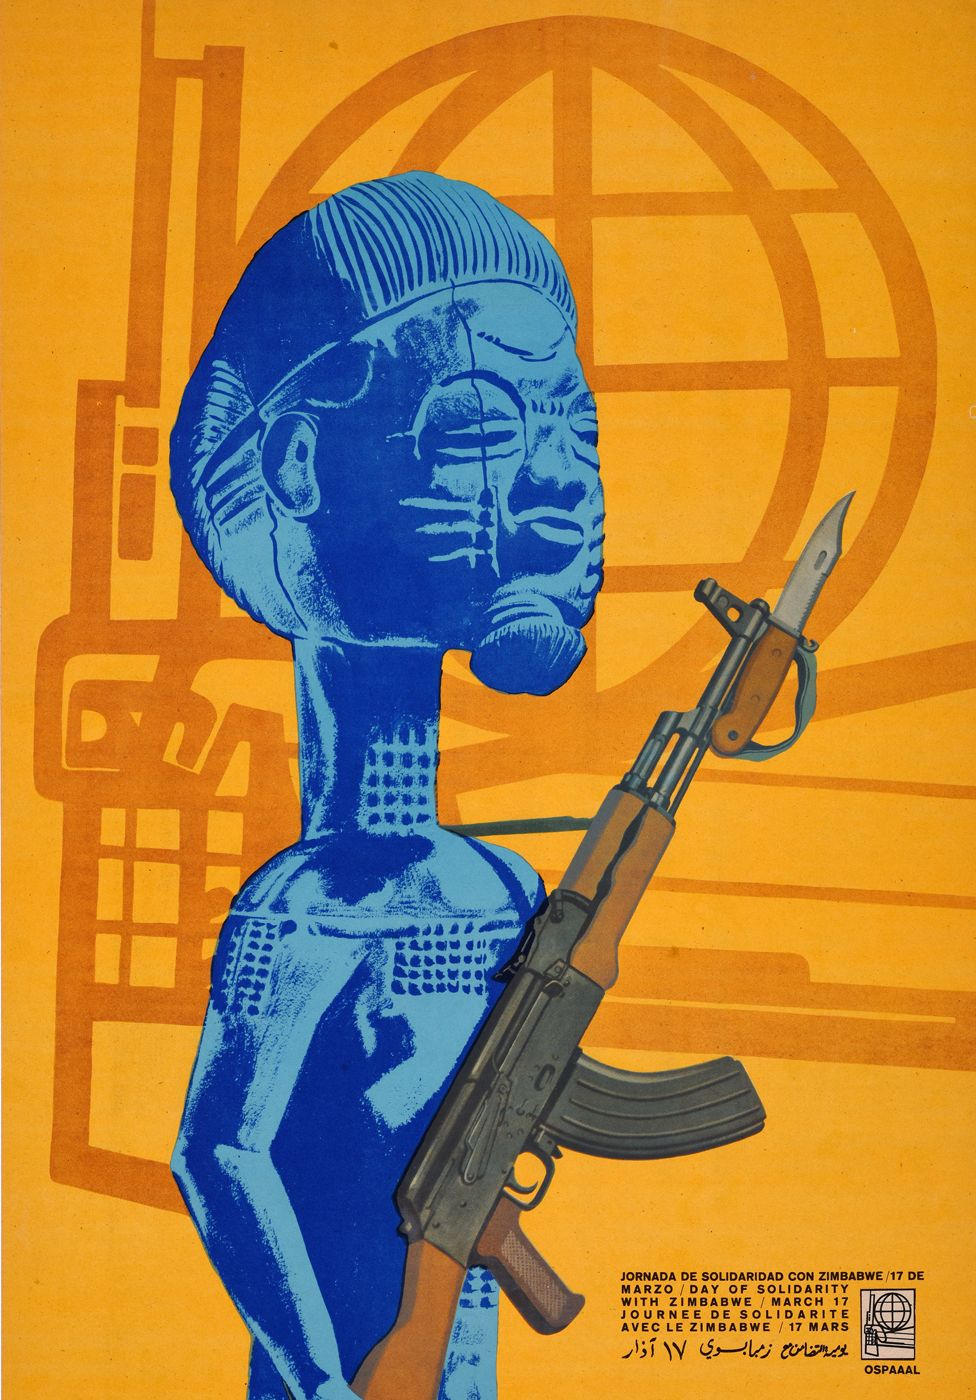 An Ospaaal poster entitled Day of Solidarity with Zimbabwe, 1969. showing a statue holding a gun